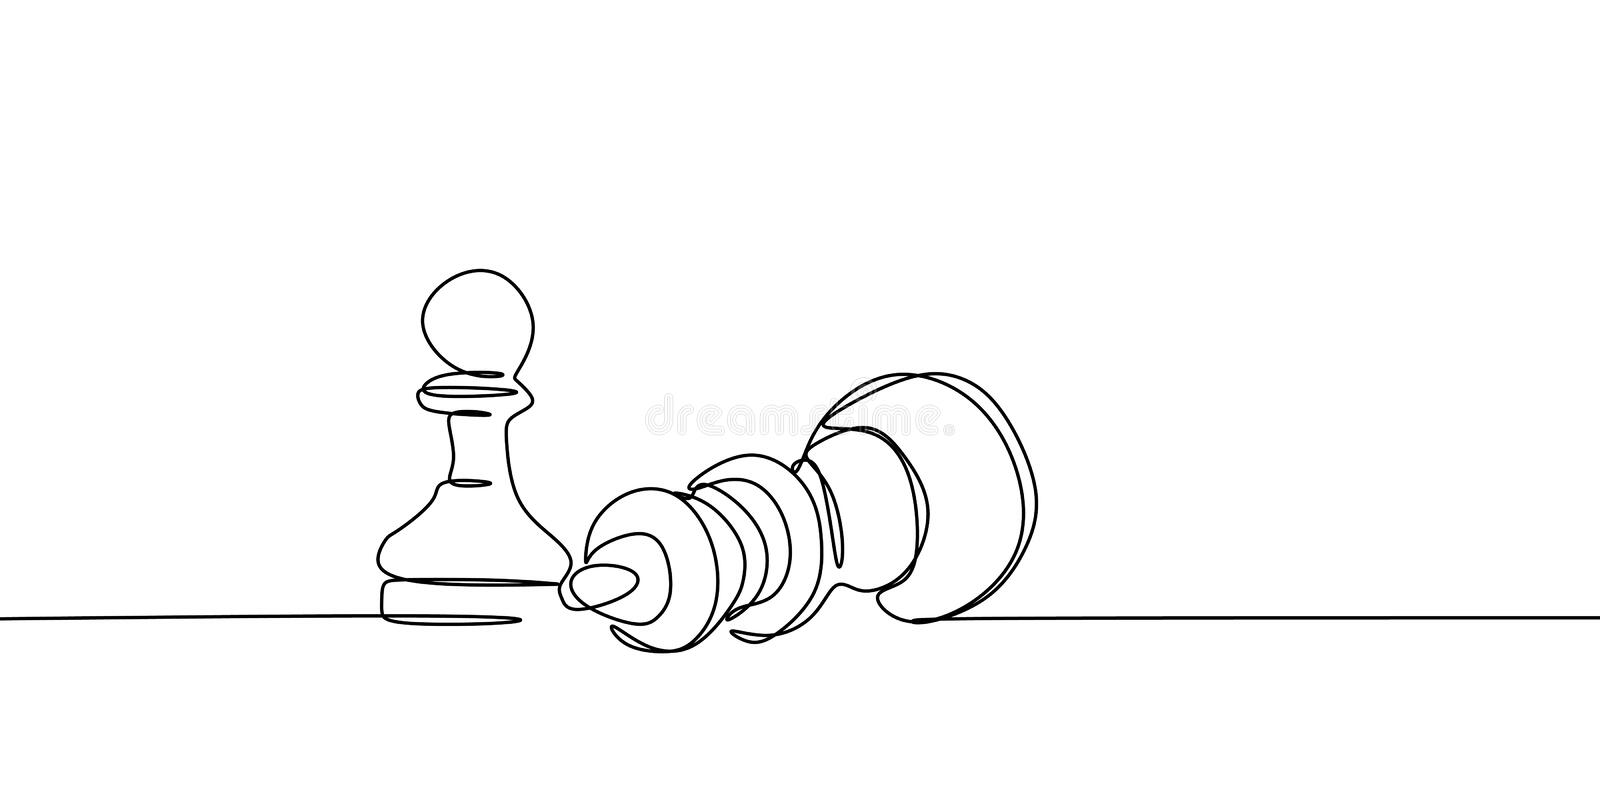 continuous line drawing of a pawn bearing down a queen on board tournament vector illustration royalty free illustration